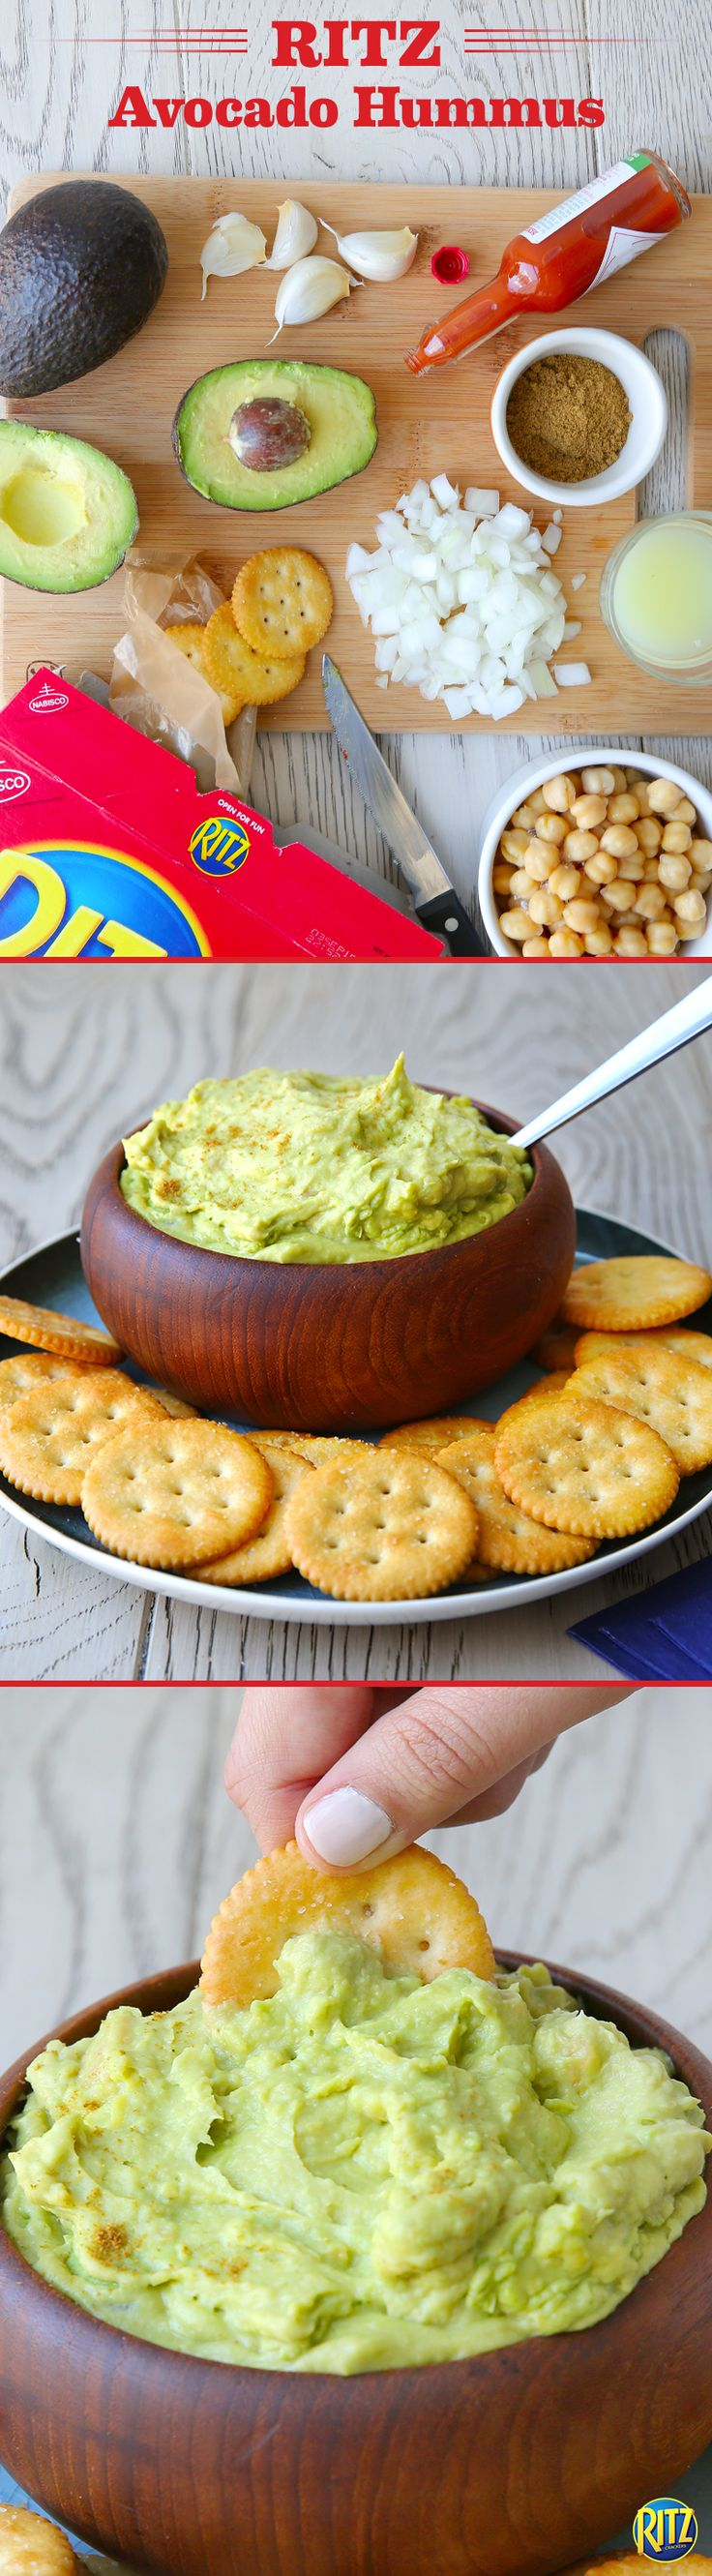 This RITZ cracker Avocado Hummus is an easy summertime dip. Combine avocados, chickpeas, chopped onion, garlic, lemon juice, hot pepper sauce, and cumin in a blender, mixing until smooth. Refrigerate for about one hour before serving and enjoy!